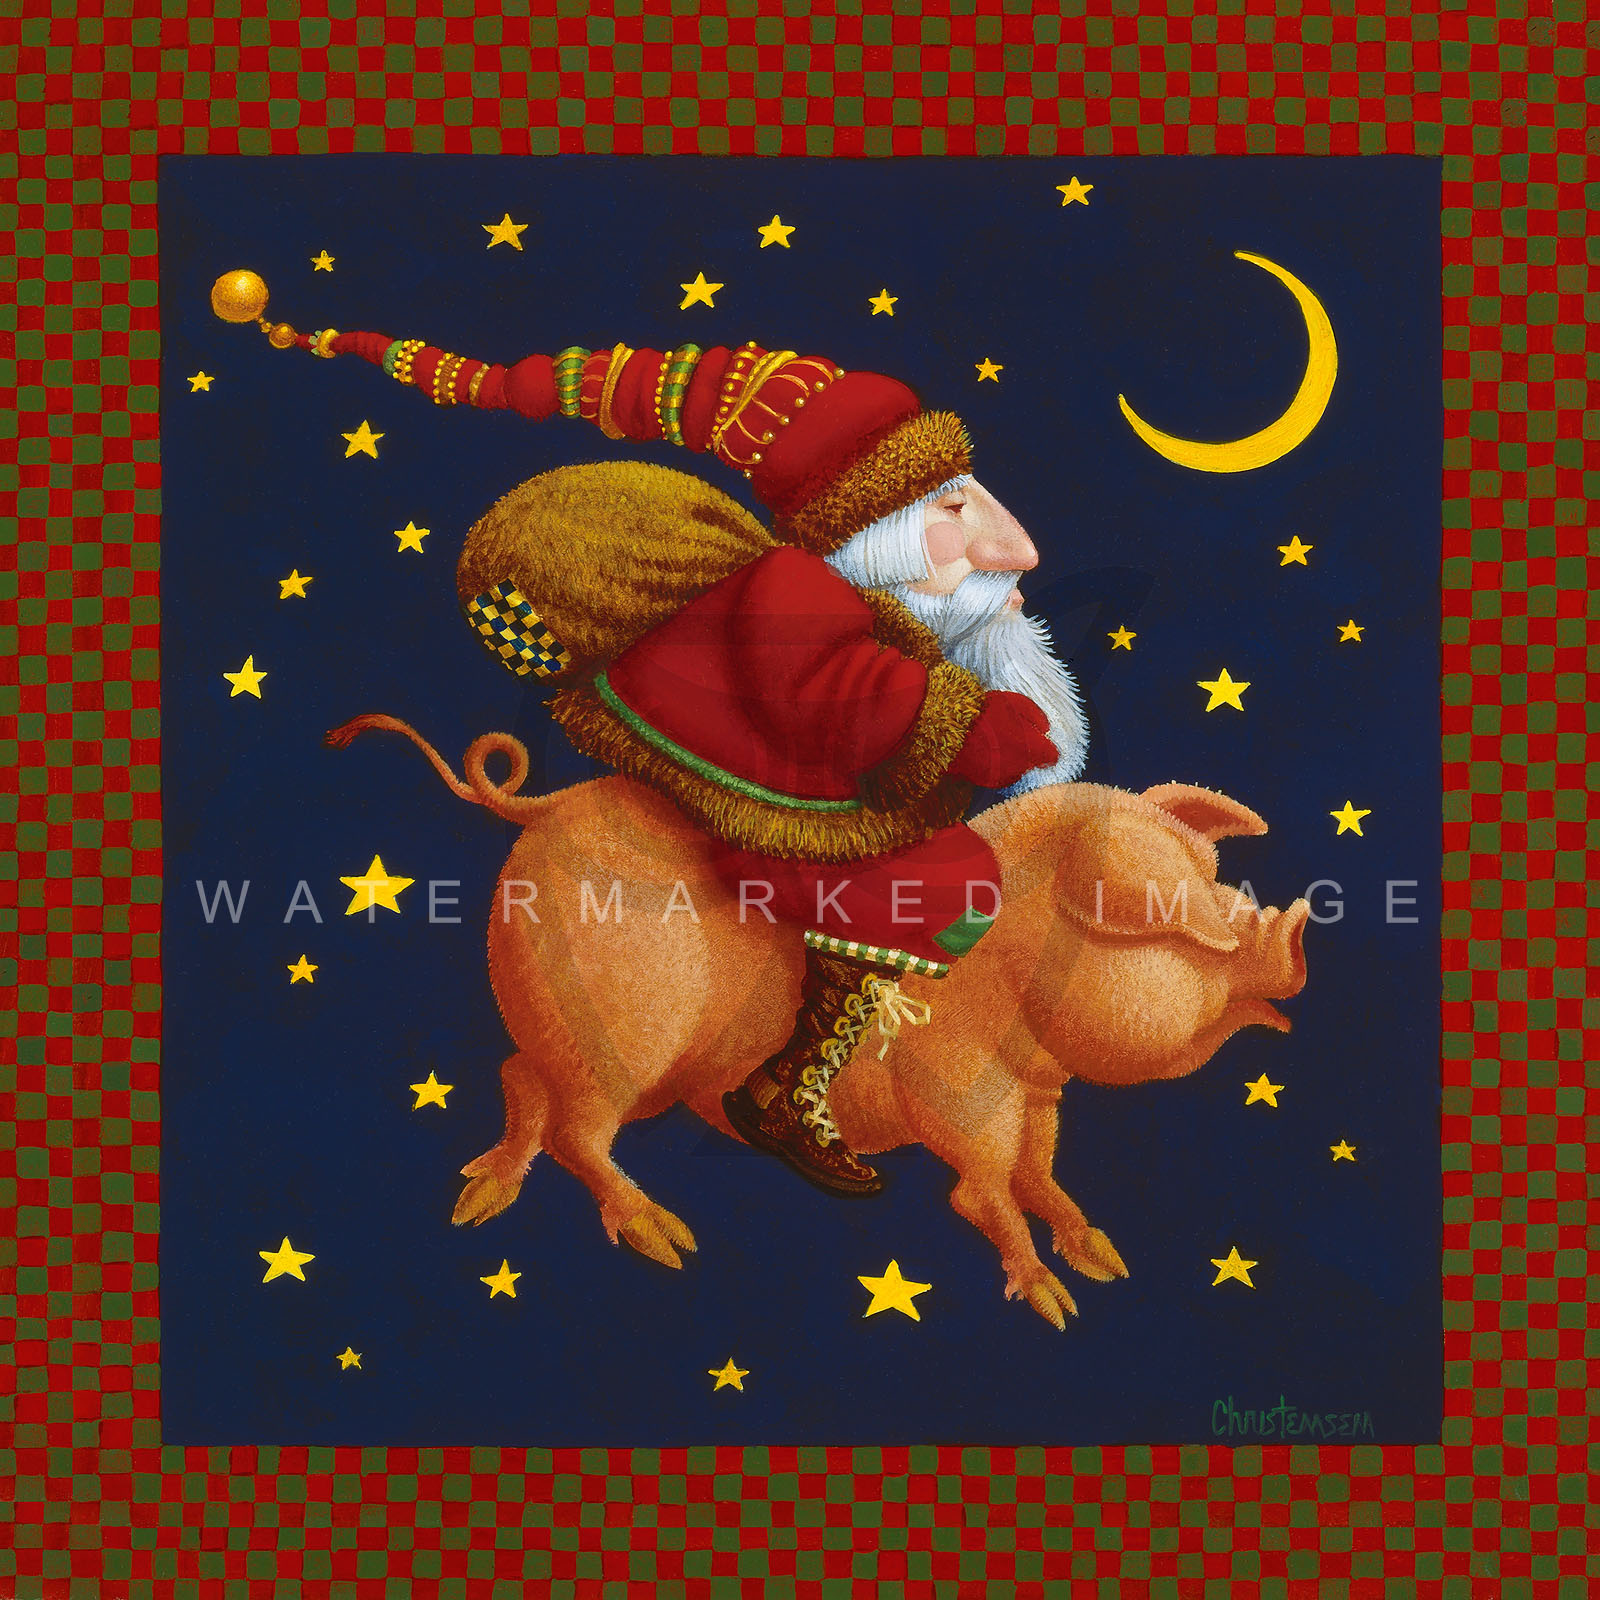 Christmas Pigs.The Christmas Pig By James C Christensen From The